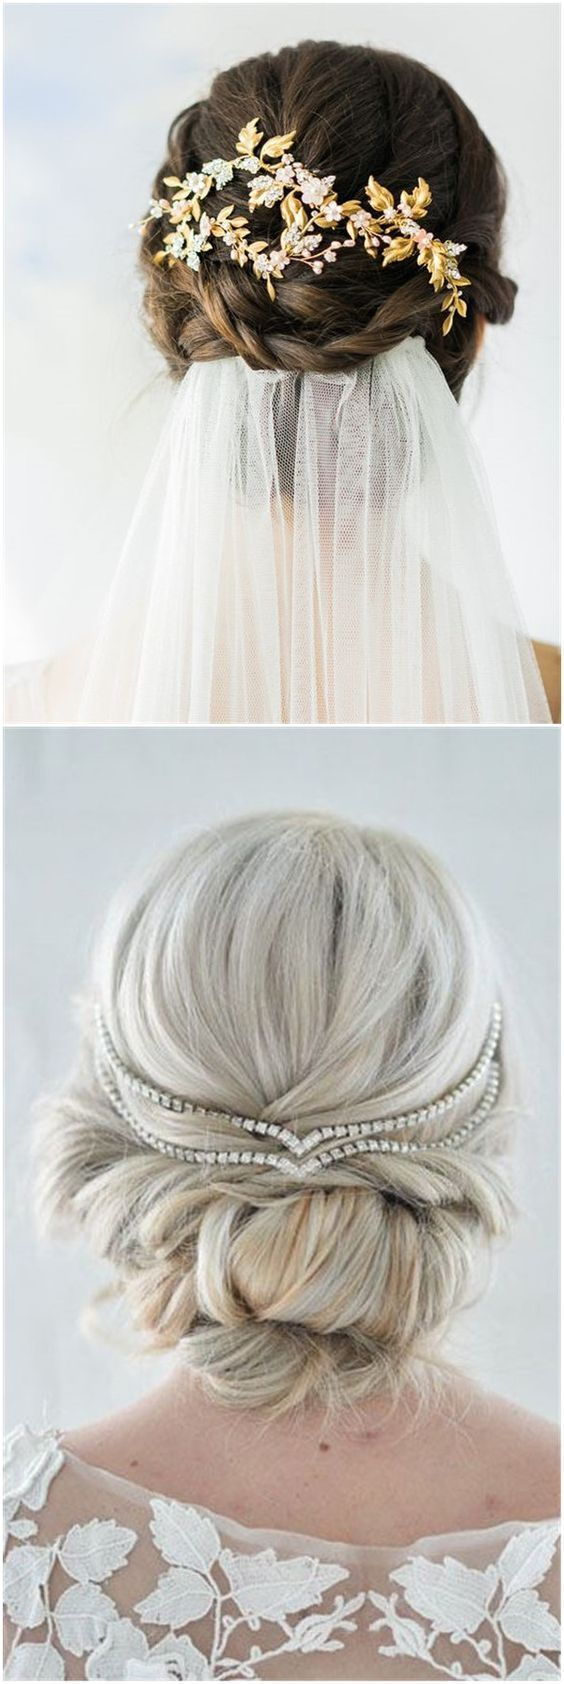 Hair Comes the Bride - 20 Bridal Hair Accessories Get Style Advice ...